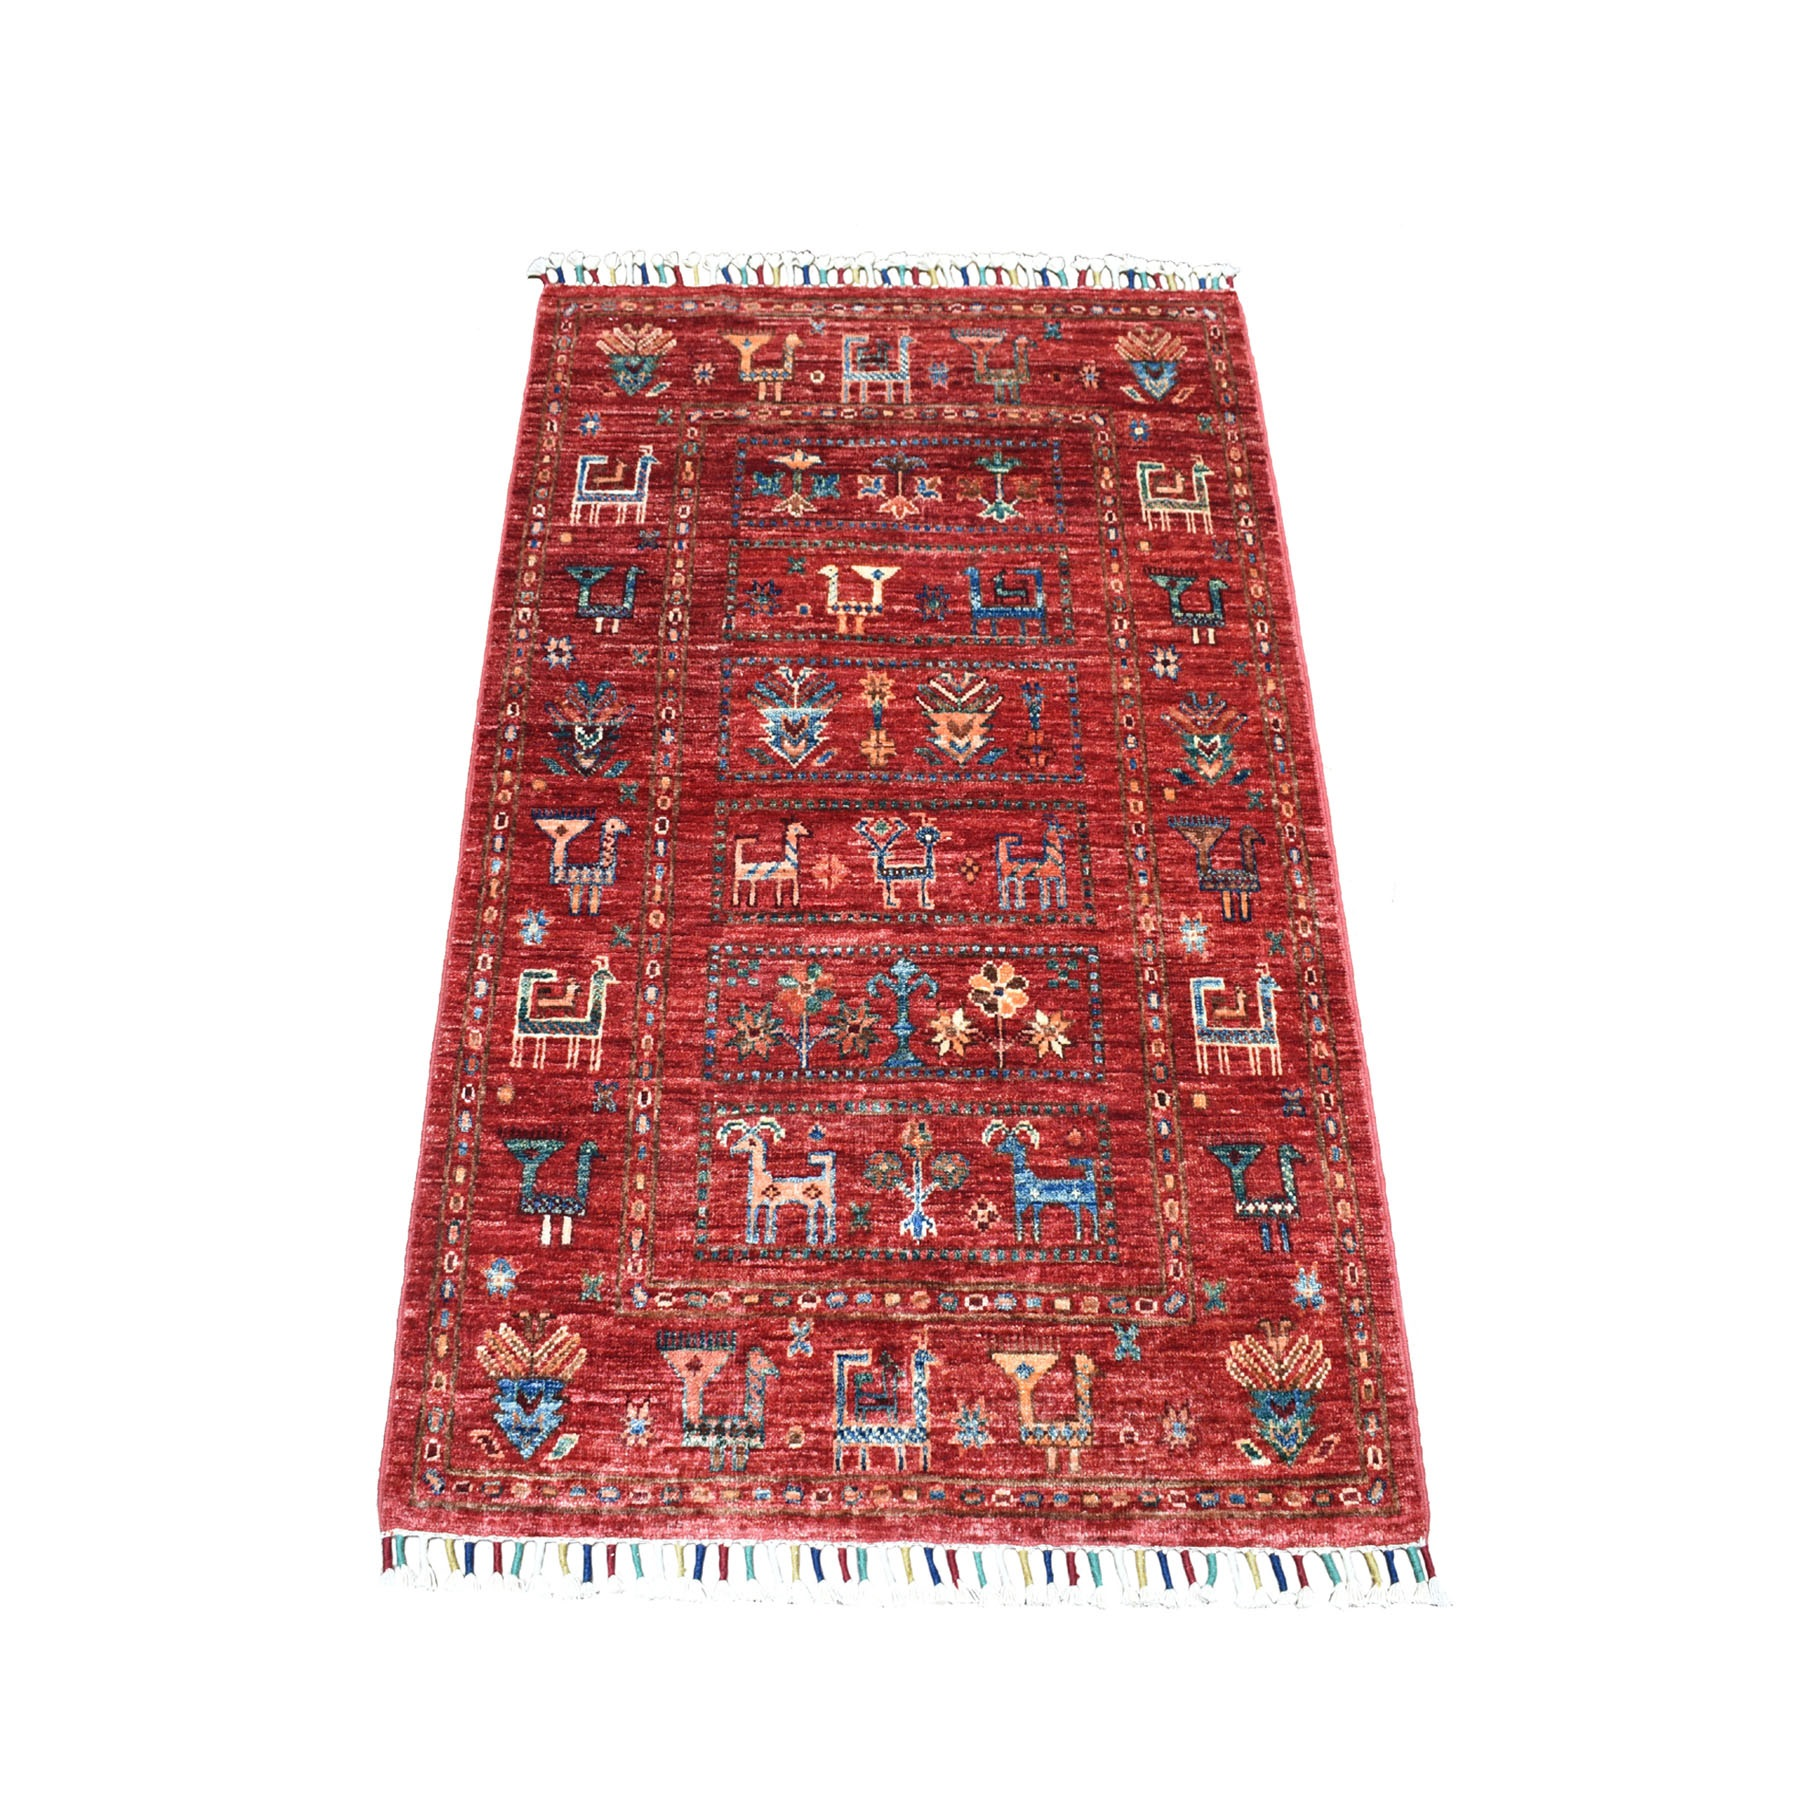 "2'8""X4' Khorjin Design Colorful Super Kazak With Animals Pure Wool Hand Knotted Oriental Rug  moaeb0e6"